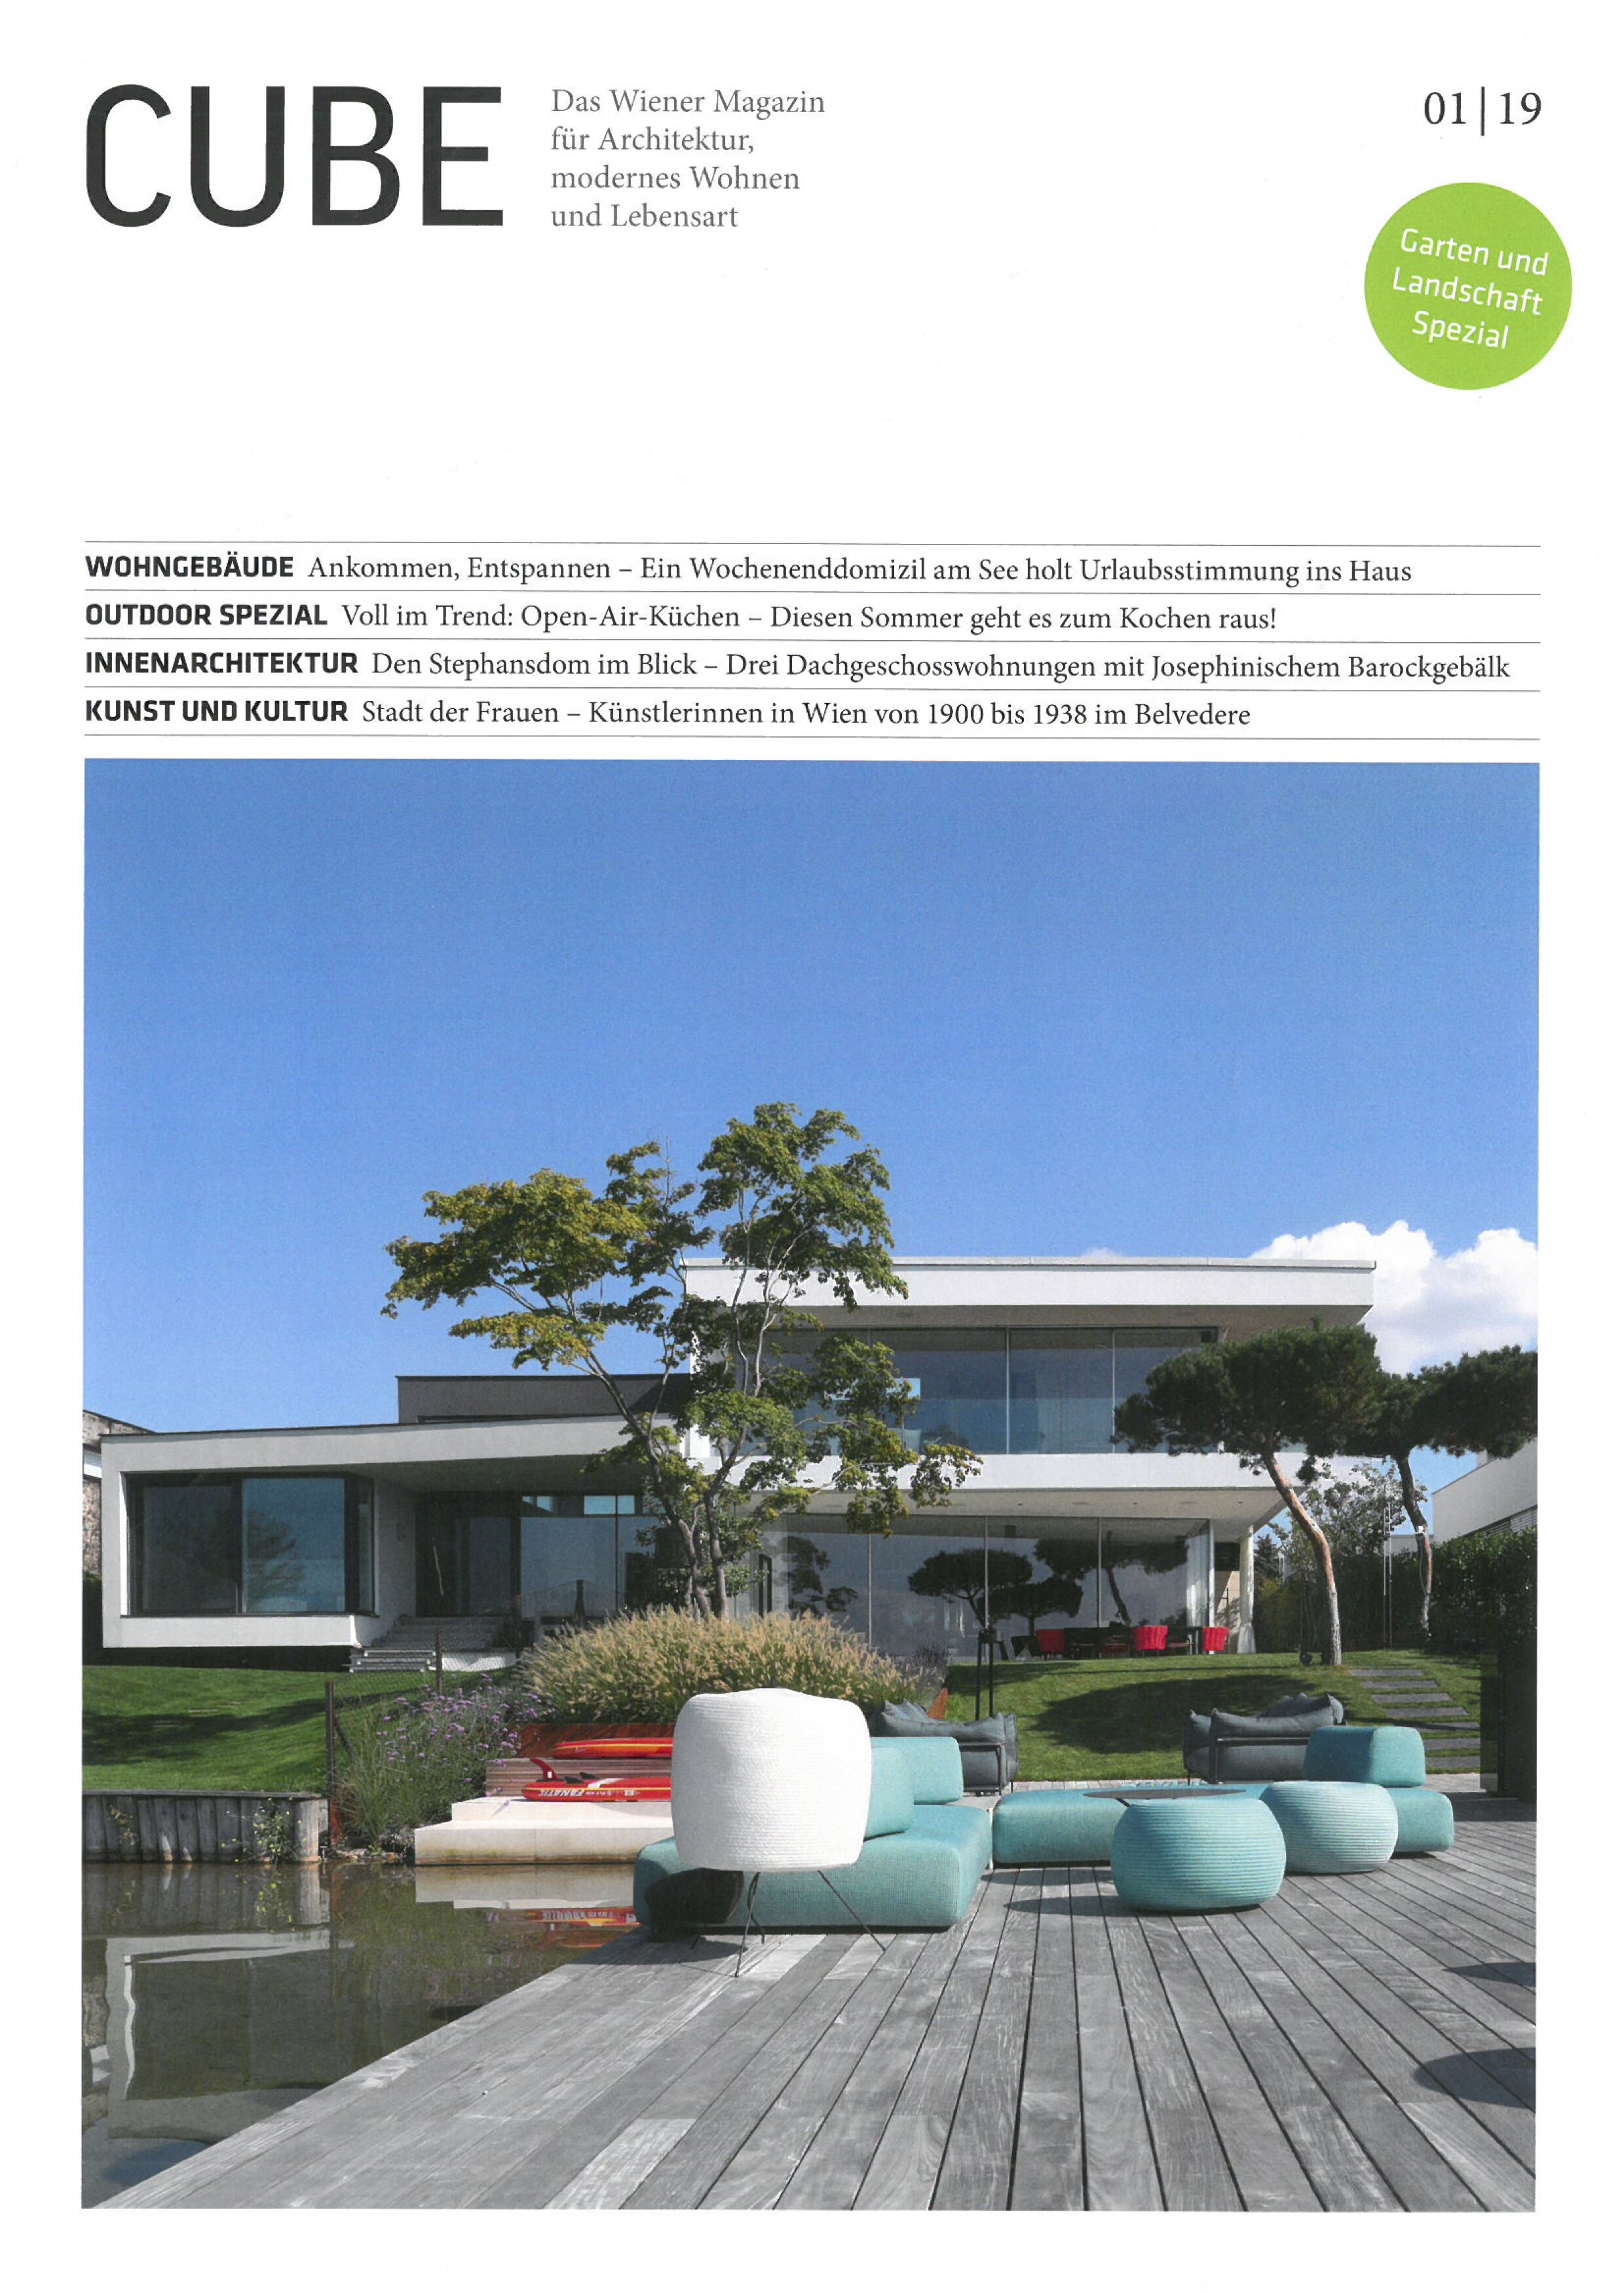 Arrive and relax - Coverstory in print magazine CUBE